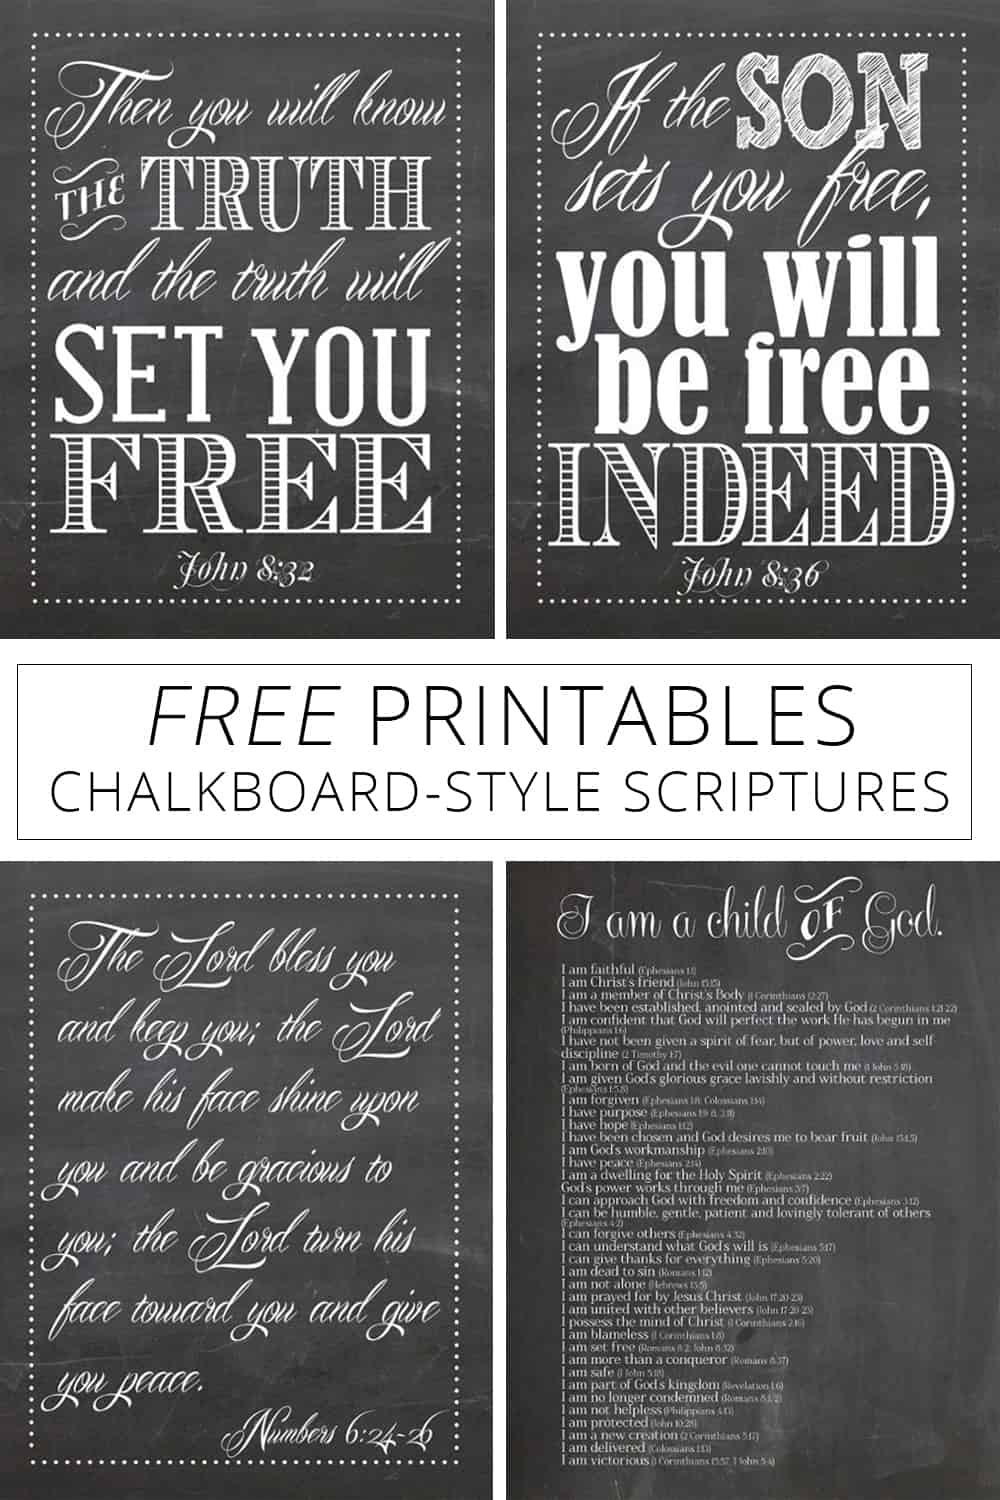 This is a graphic of Priceless Free Printable Images